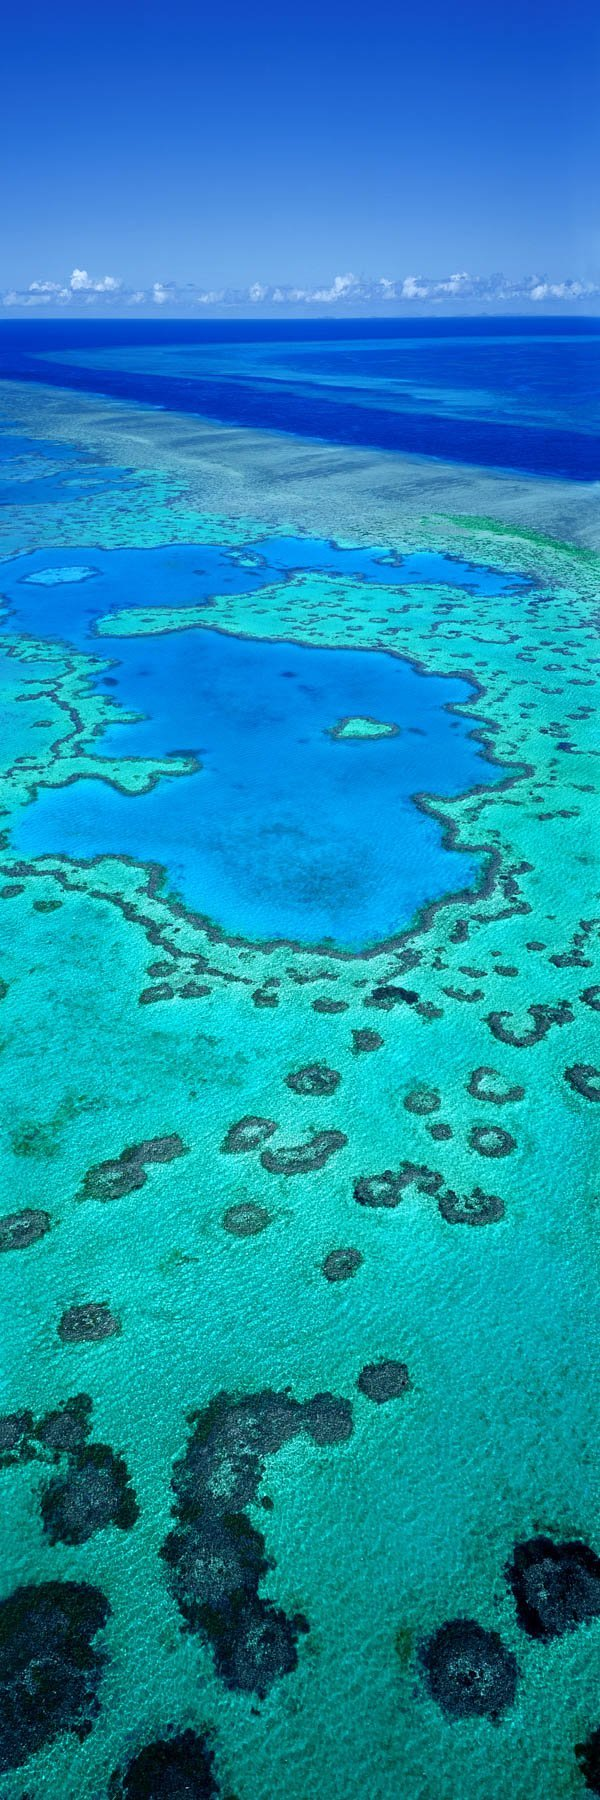 An aerial view of Heart Reef, Whitsundays, Qld, Australia.